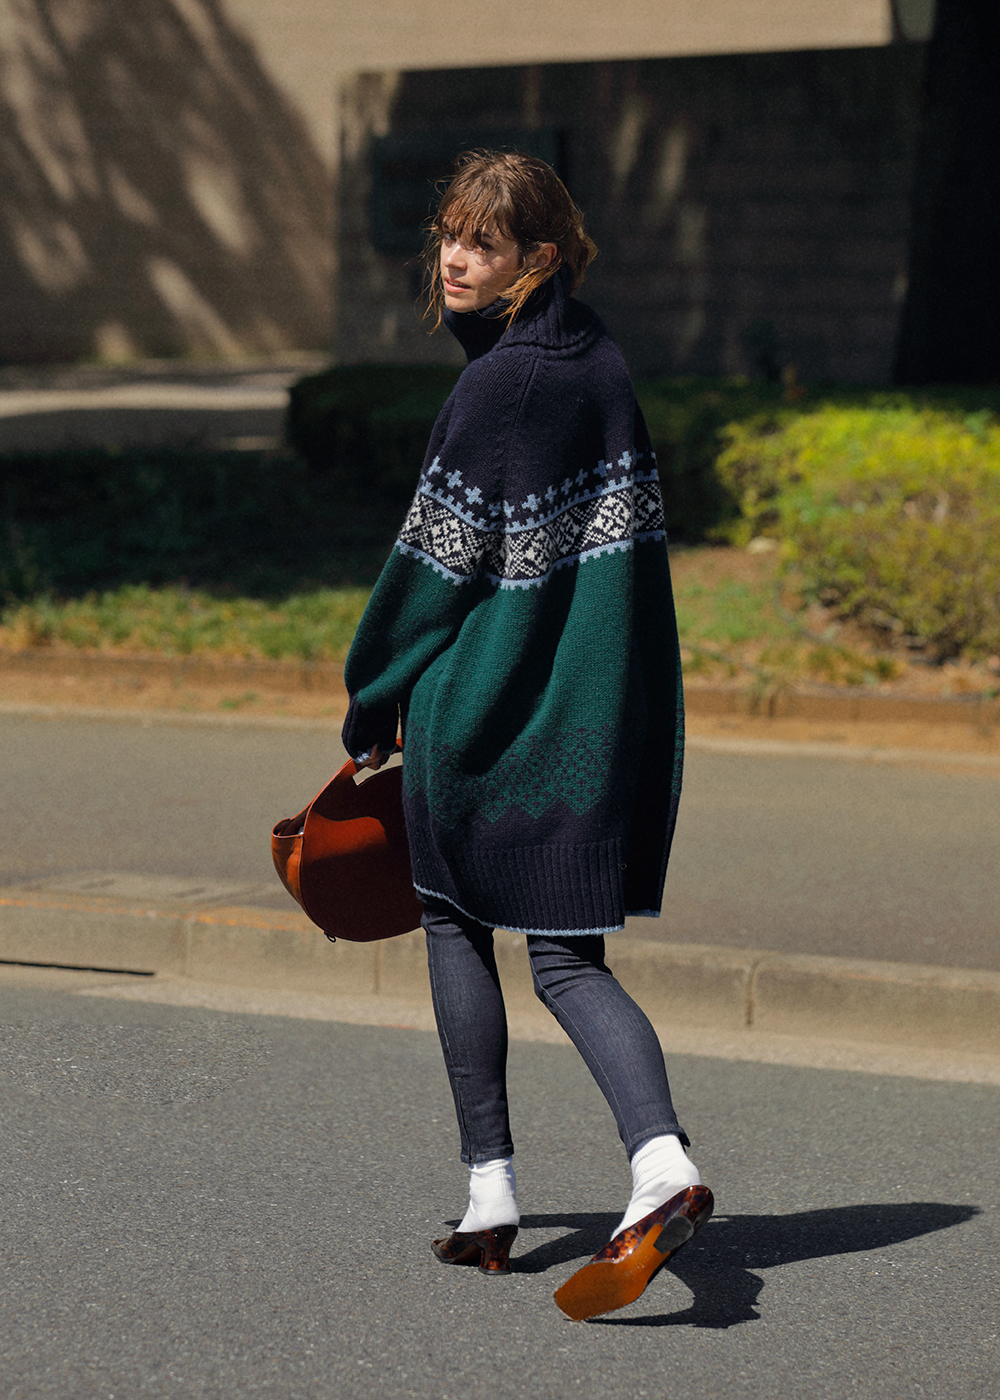 【WOMEN&#8217;S 2018 Winter】</br>WALKS LIKE A LADY アイテム